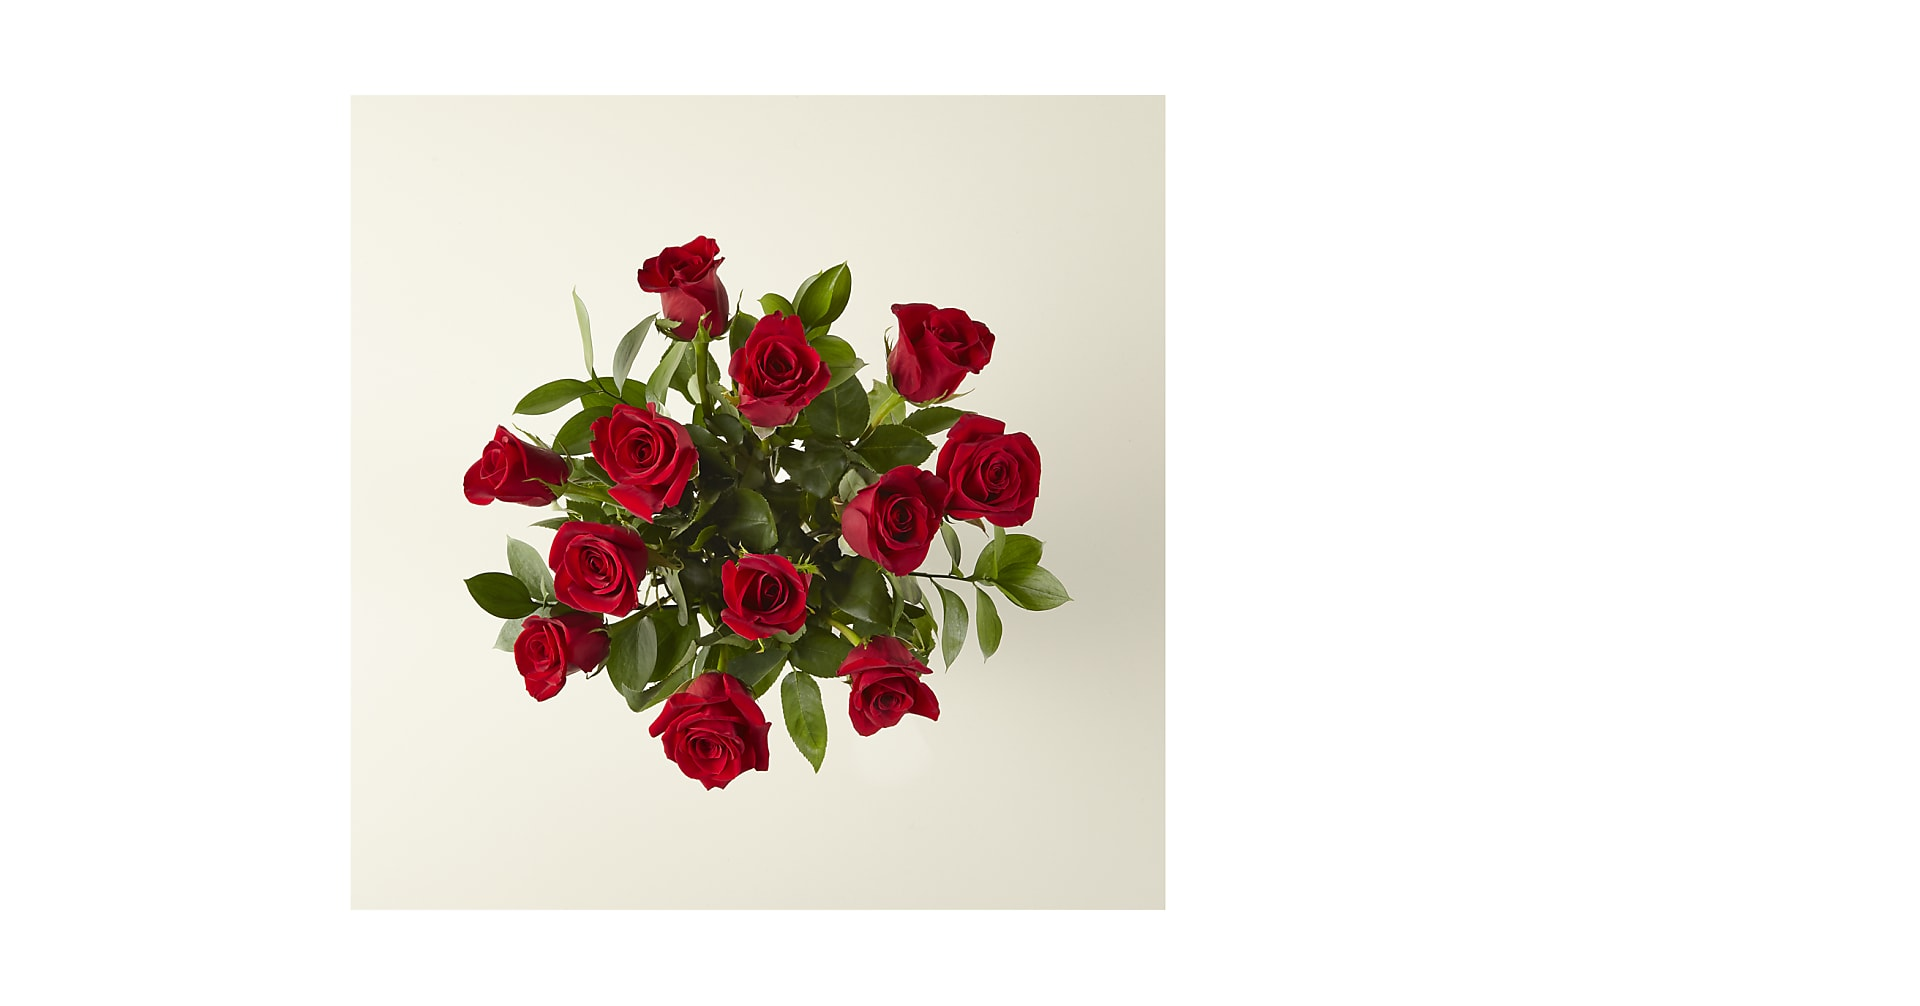 12 Red Roses, No Vase - Image 2 Of 2